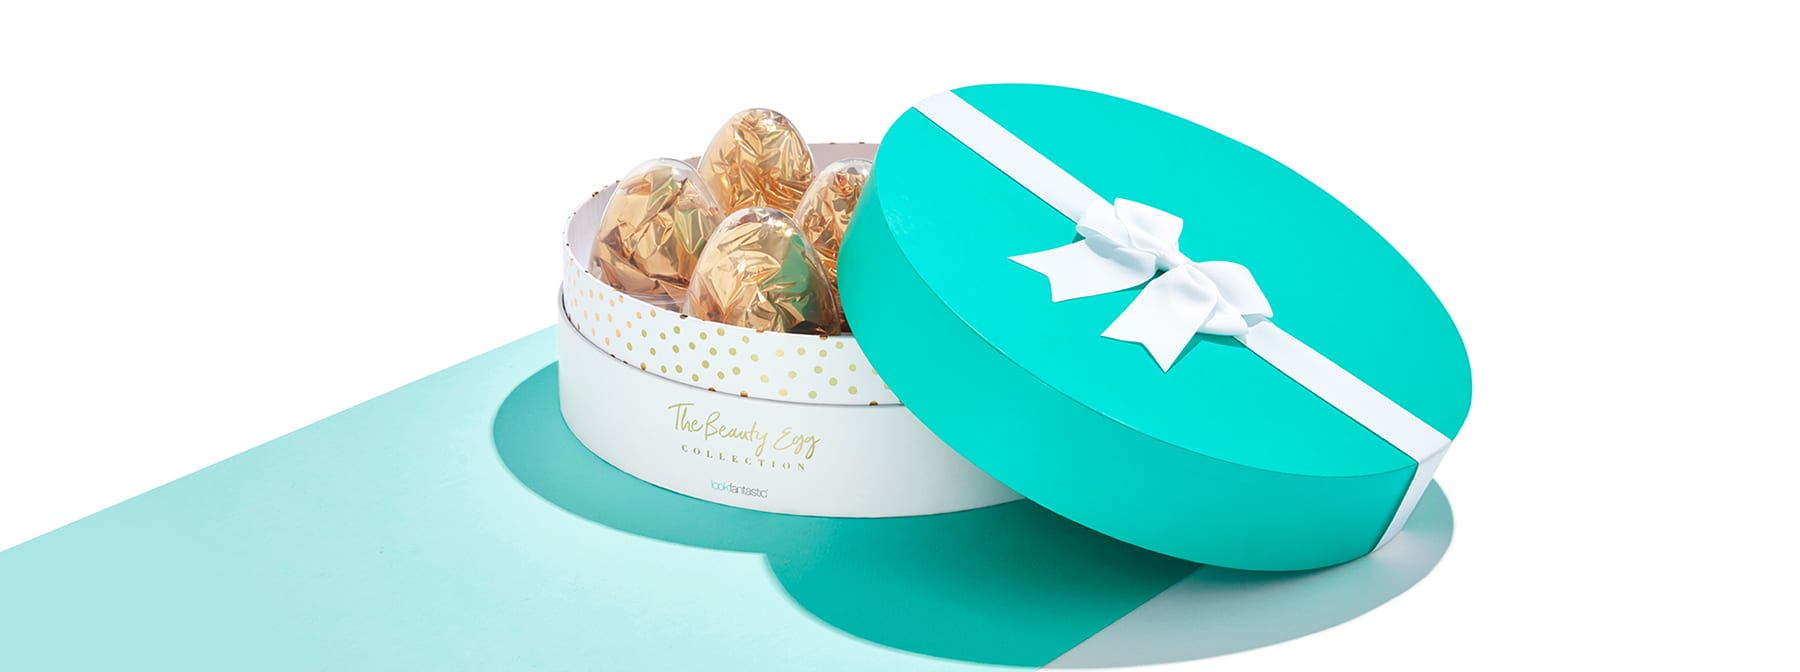 lookfantastic osterei beauty egg collection